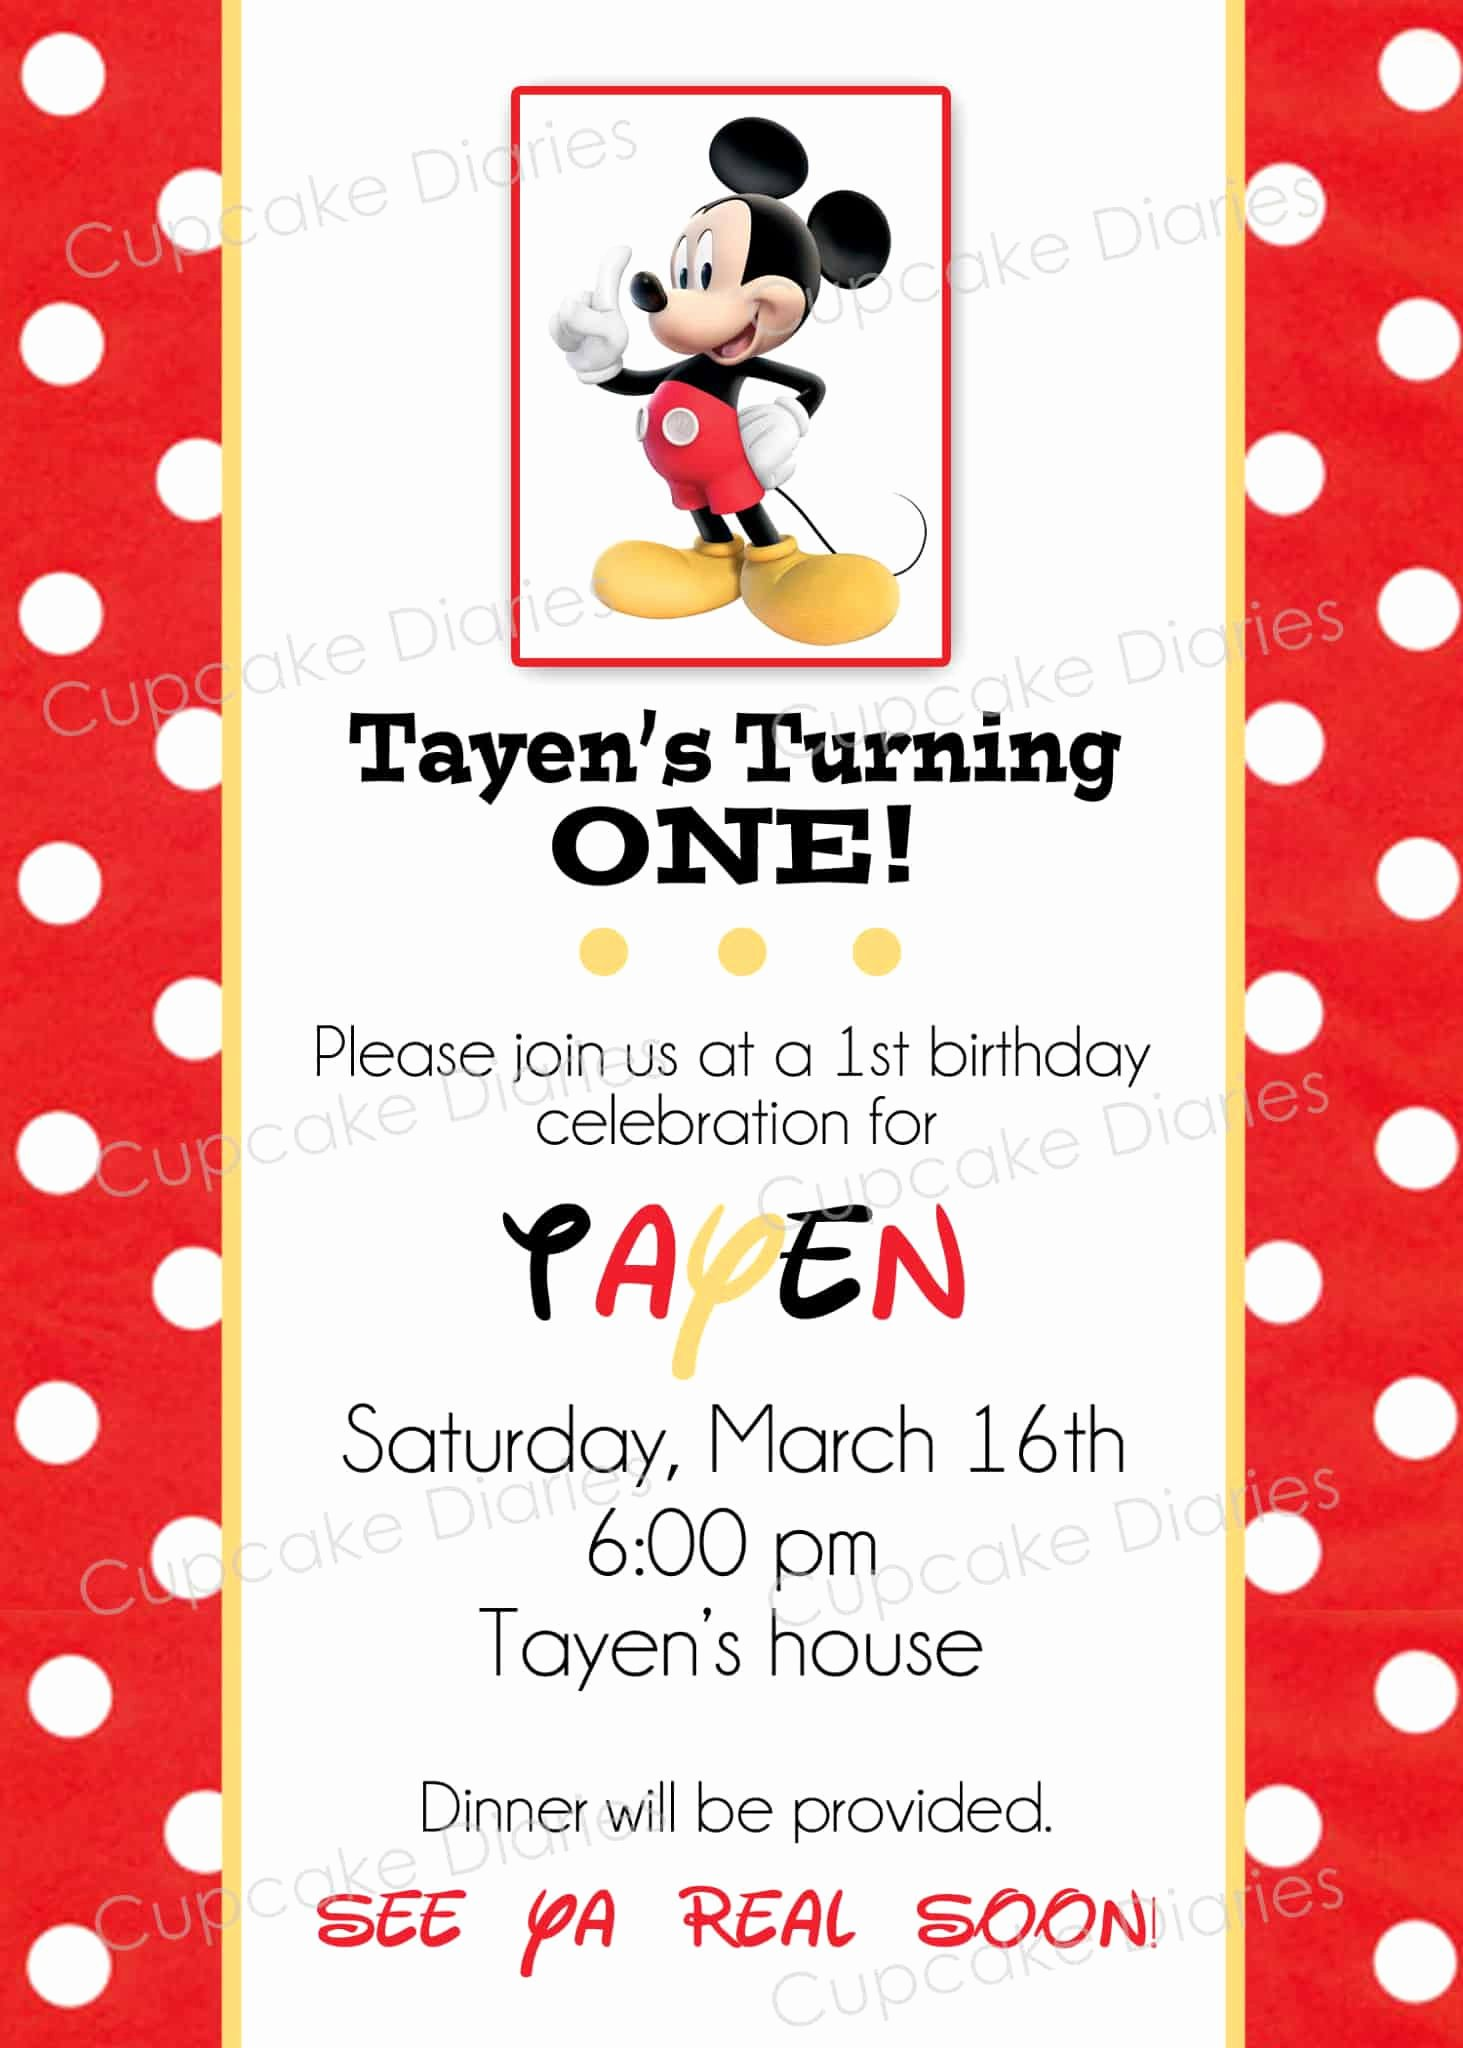 Mickey Mouse Invitations Online Awesome Simple Mickey Mouse Birthday Party Free Subway Art Printable Cupcake Diaries